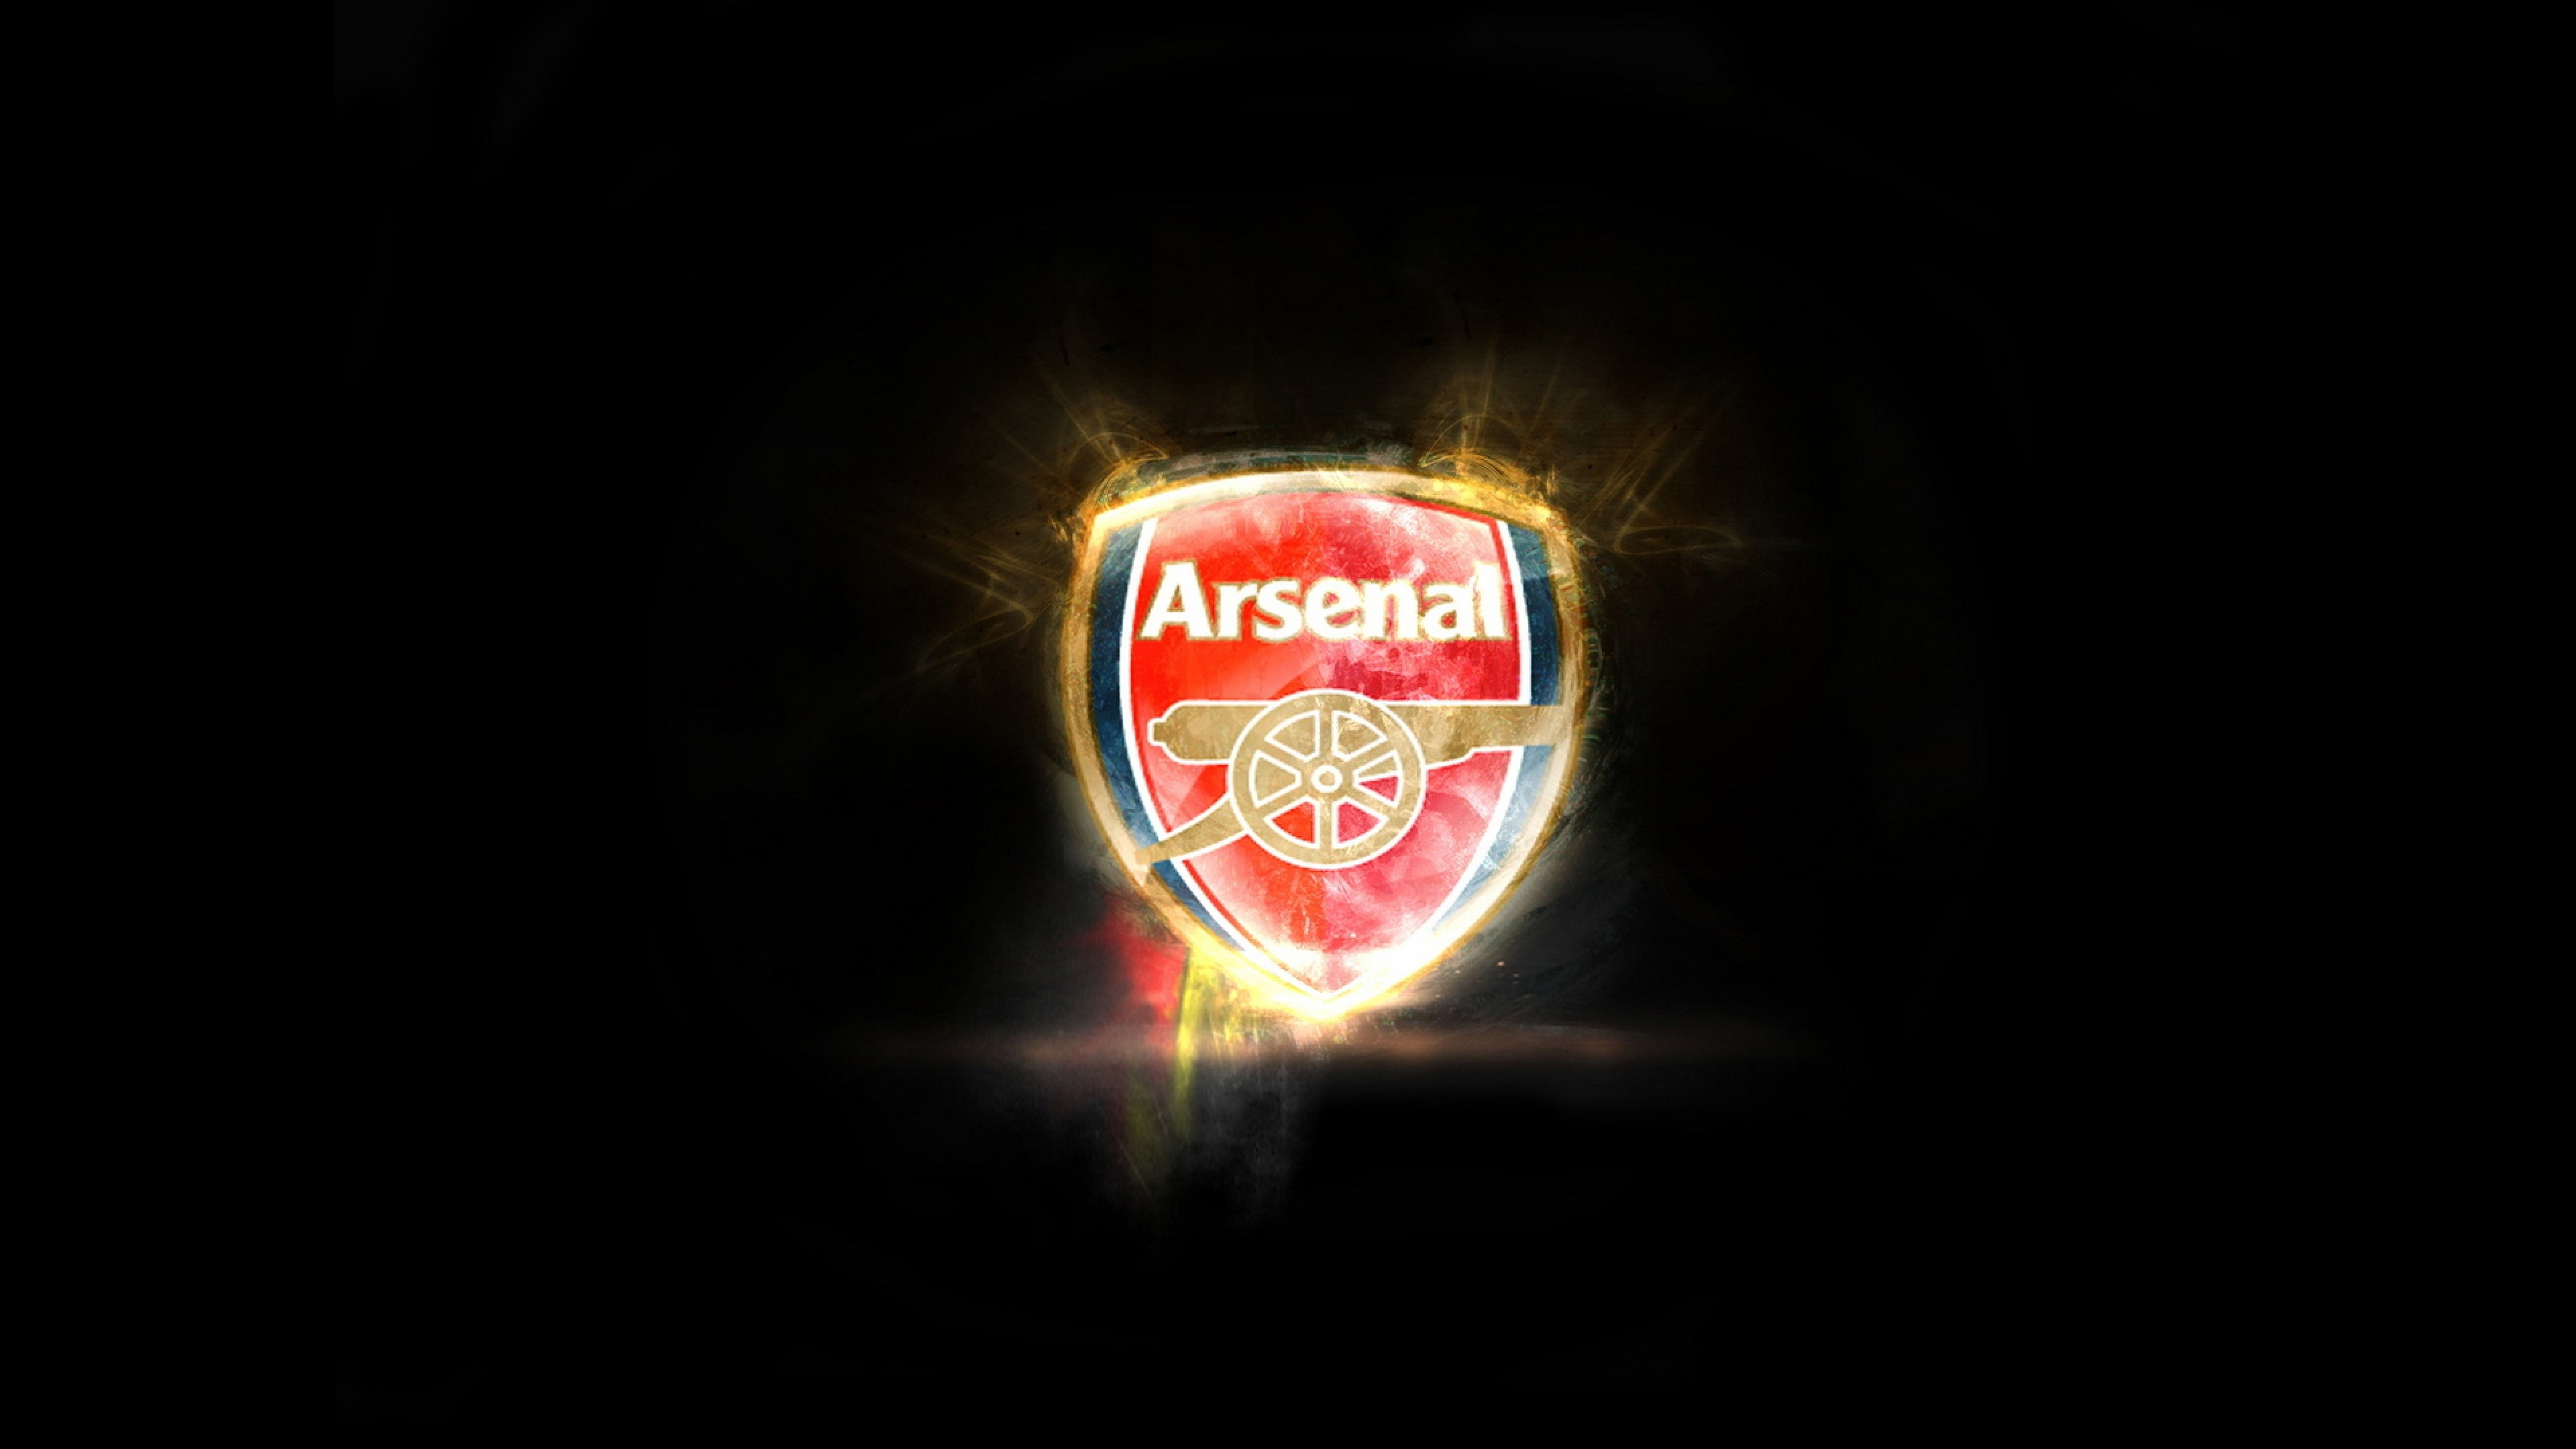 wallpaper.wiki-Images-Arsenal-Logo-Wallpapers-PIC-WPE0012185